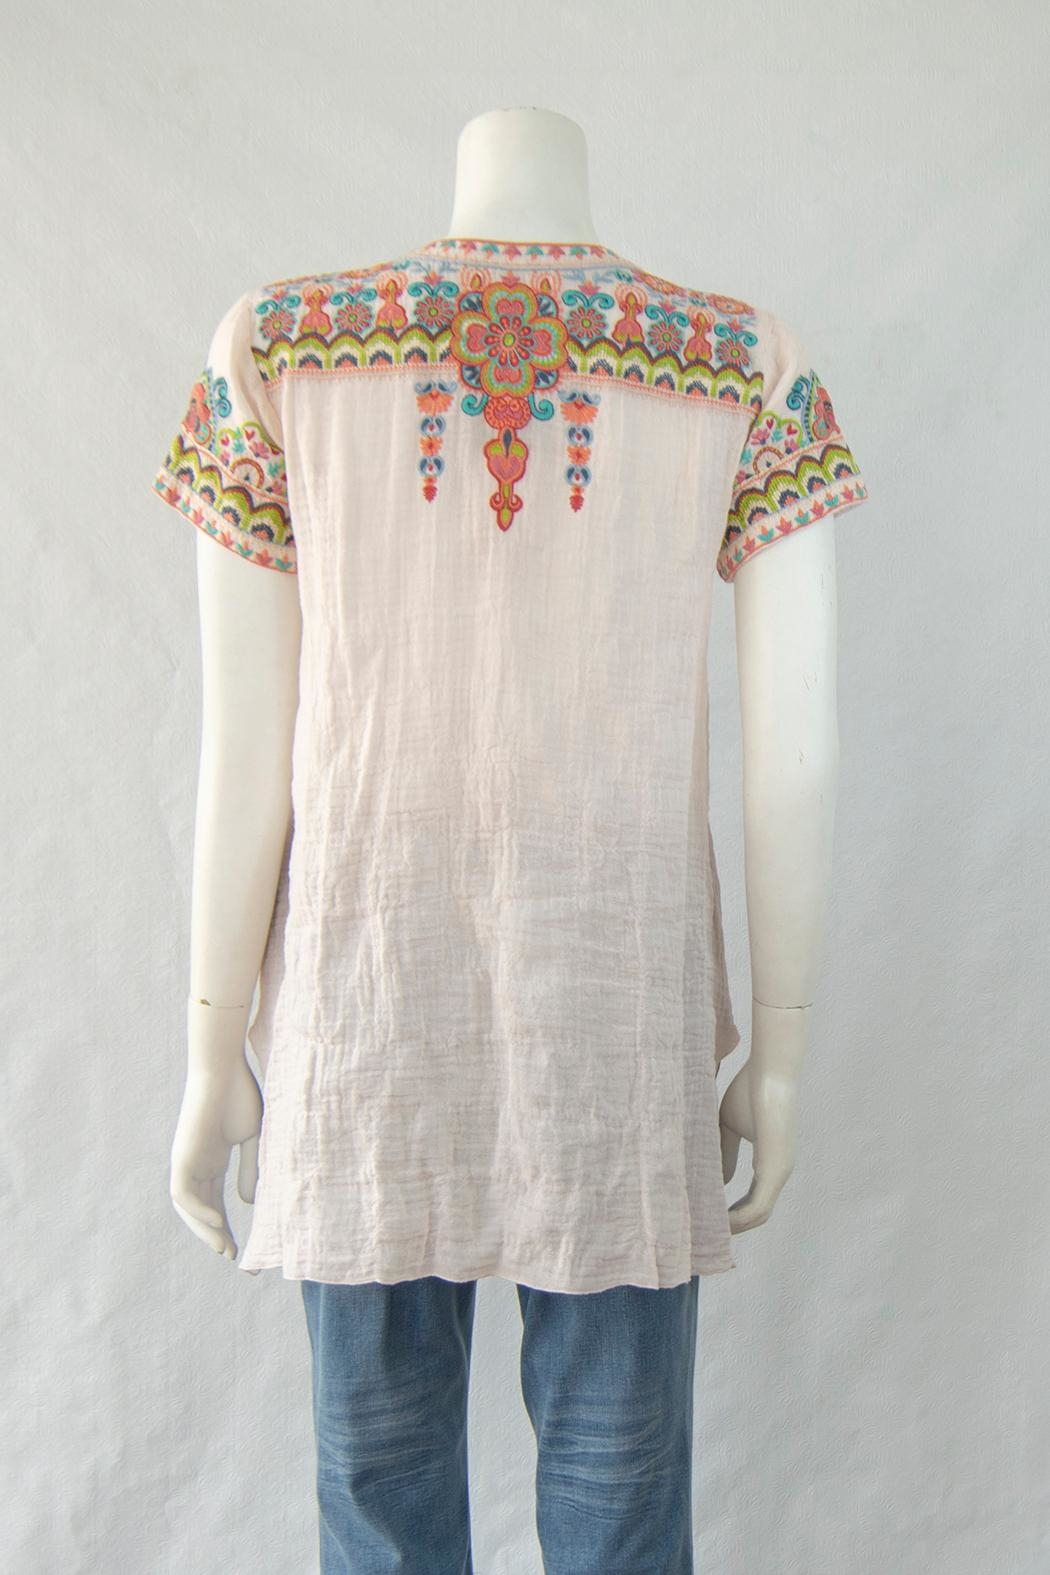 3J Workshop by Johnny Was Tamia Boho Top - Front Full Image